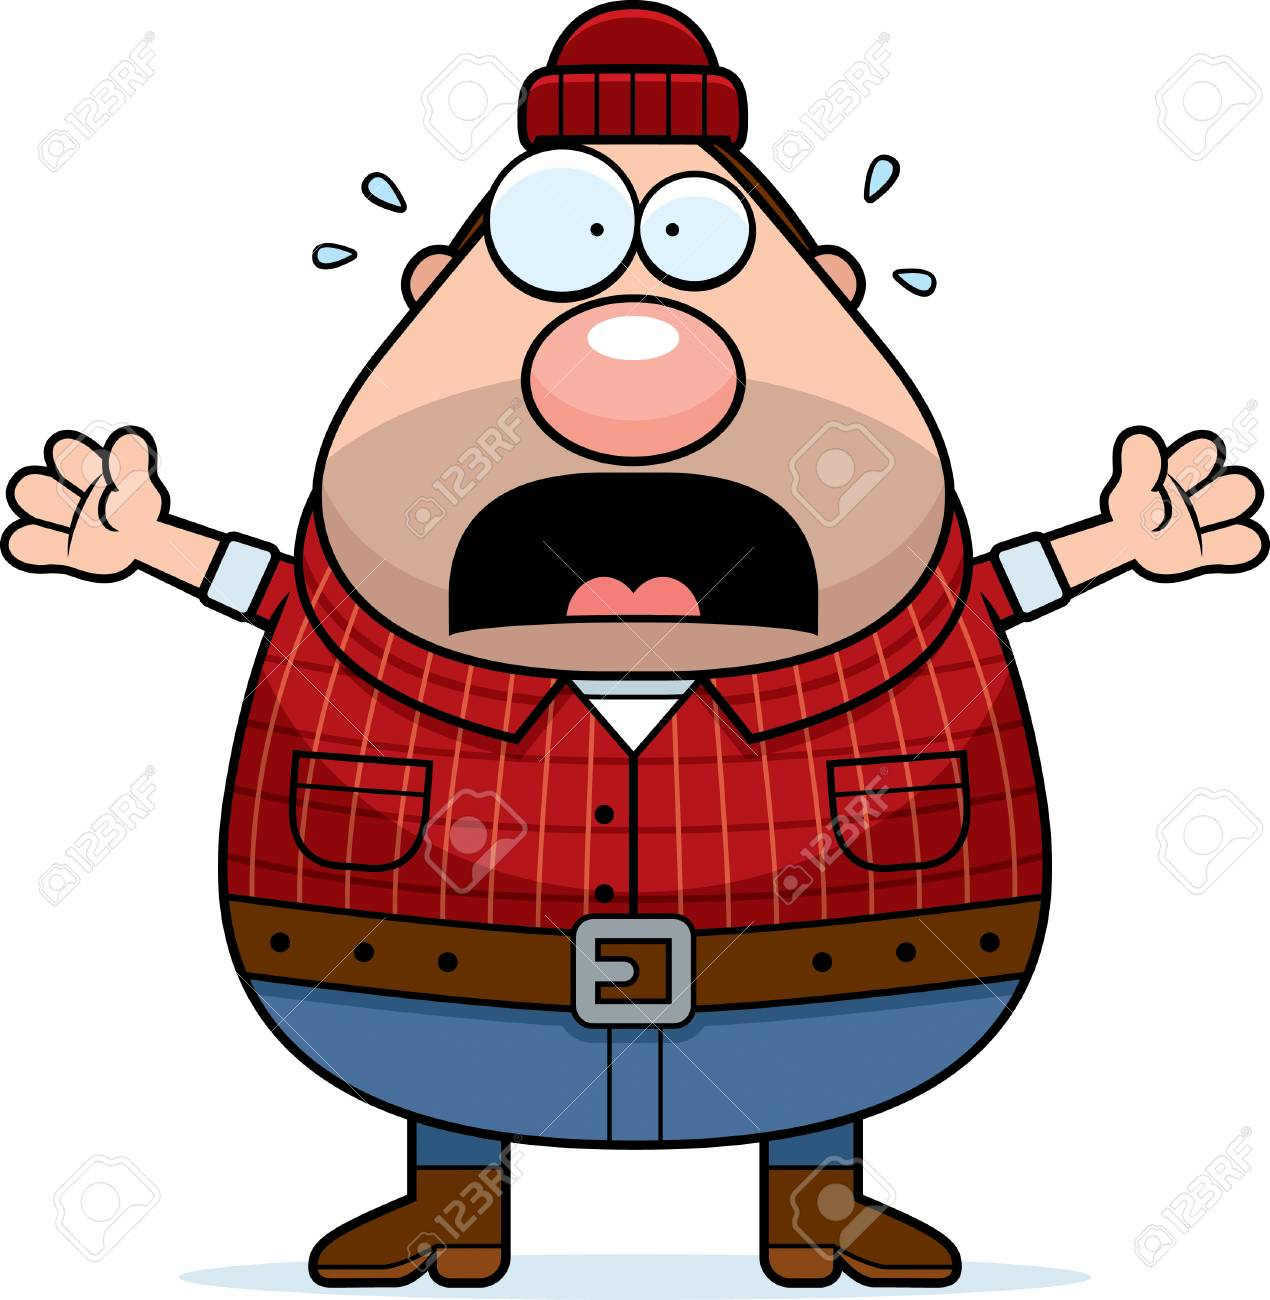 a cartoon illustration of a lumberjack looking scared royalty free rh 123rf com lumberjack axe clipart lumberjack clipart black and white